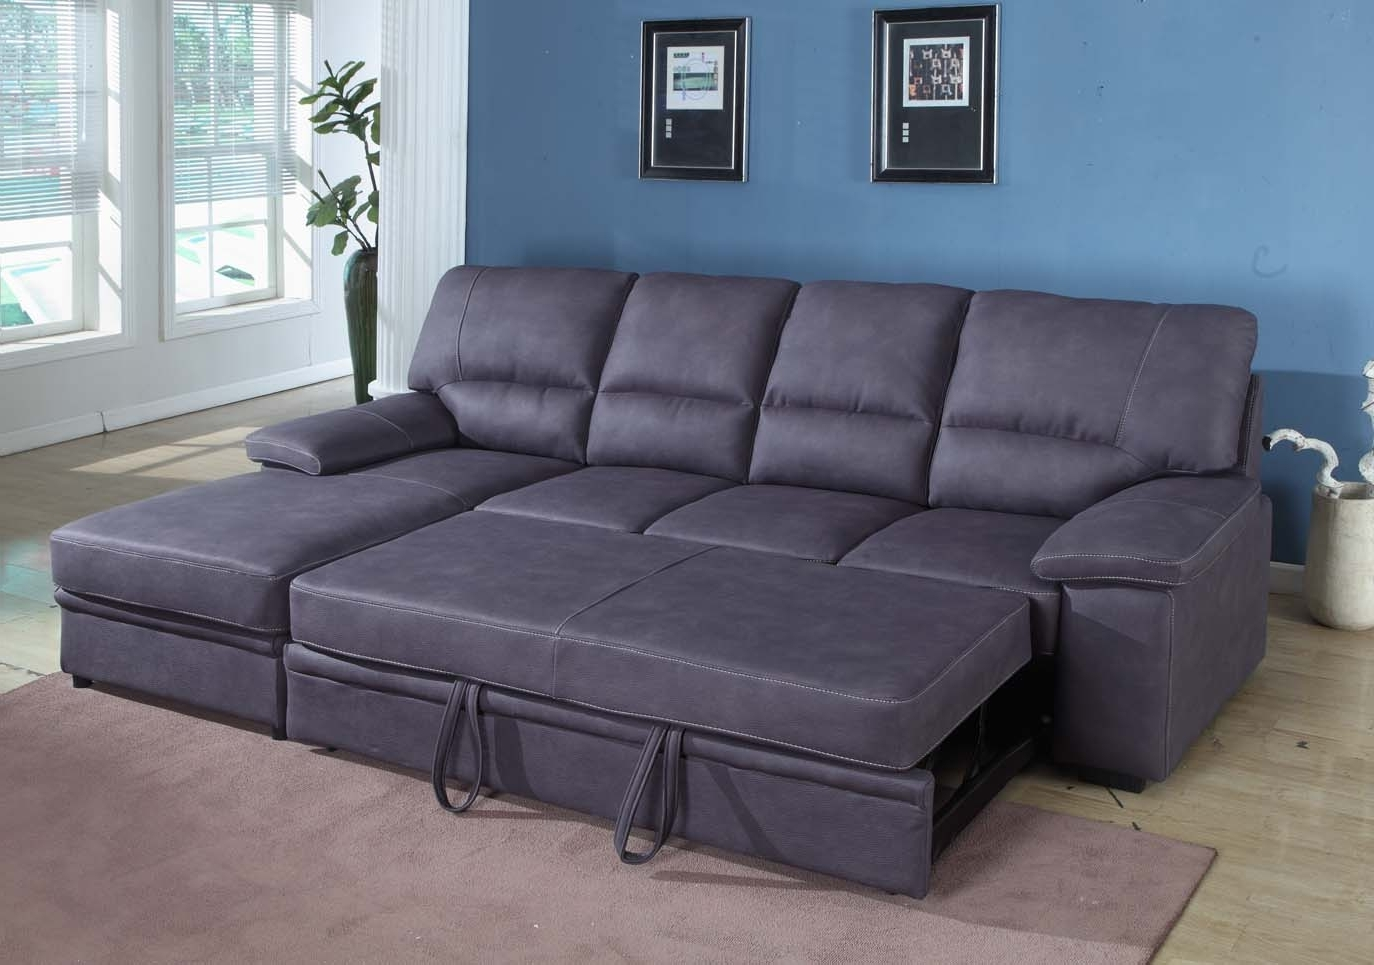 Fashionable Houston Sectional Sofas Inside Grey Sleeper Sectional Sofa (View 5 of 15)